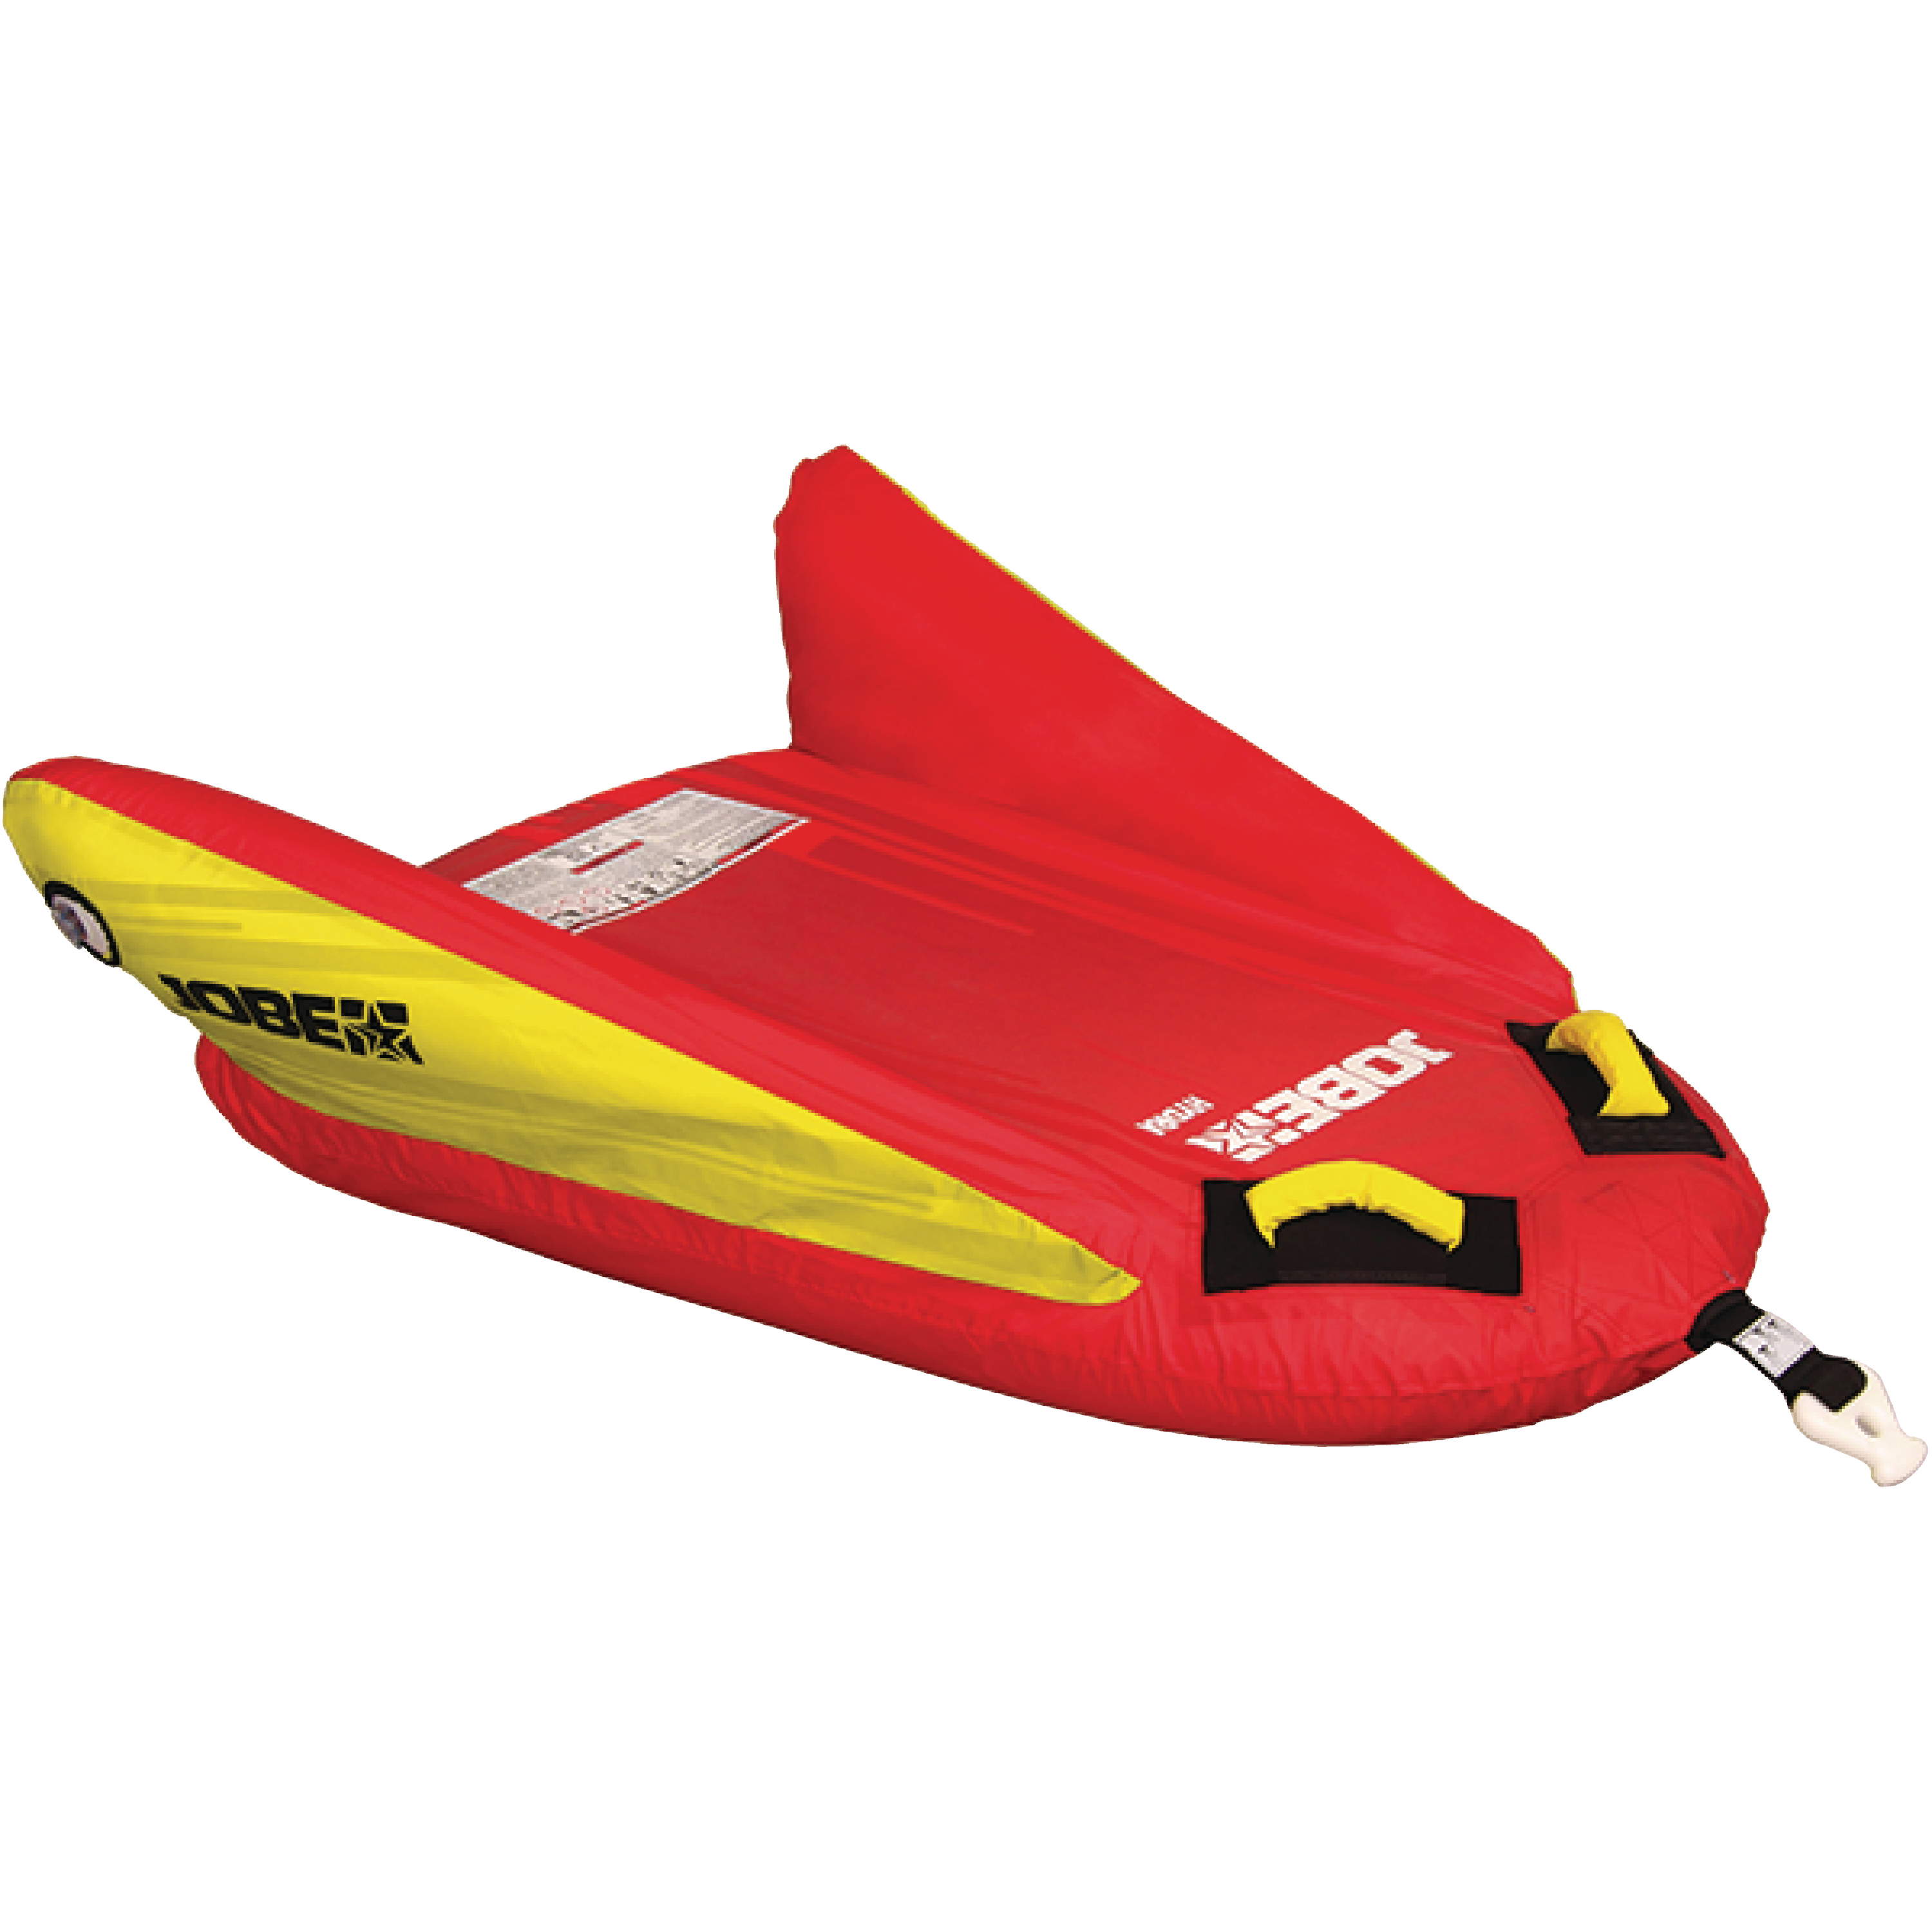 Jobe 230118003 Hydra Red 1-Person Rider Inflatable Towable